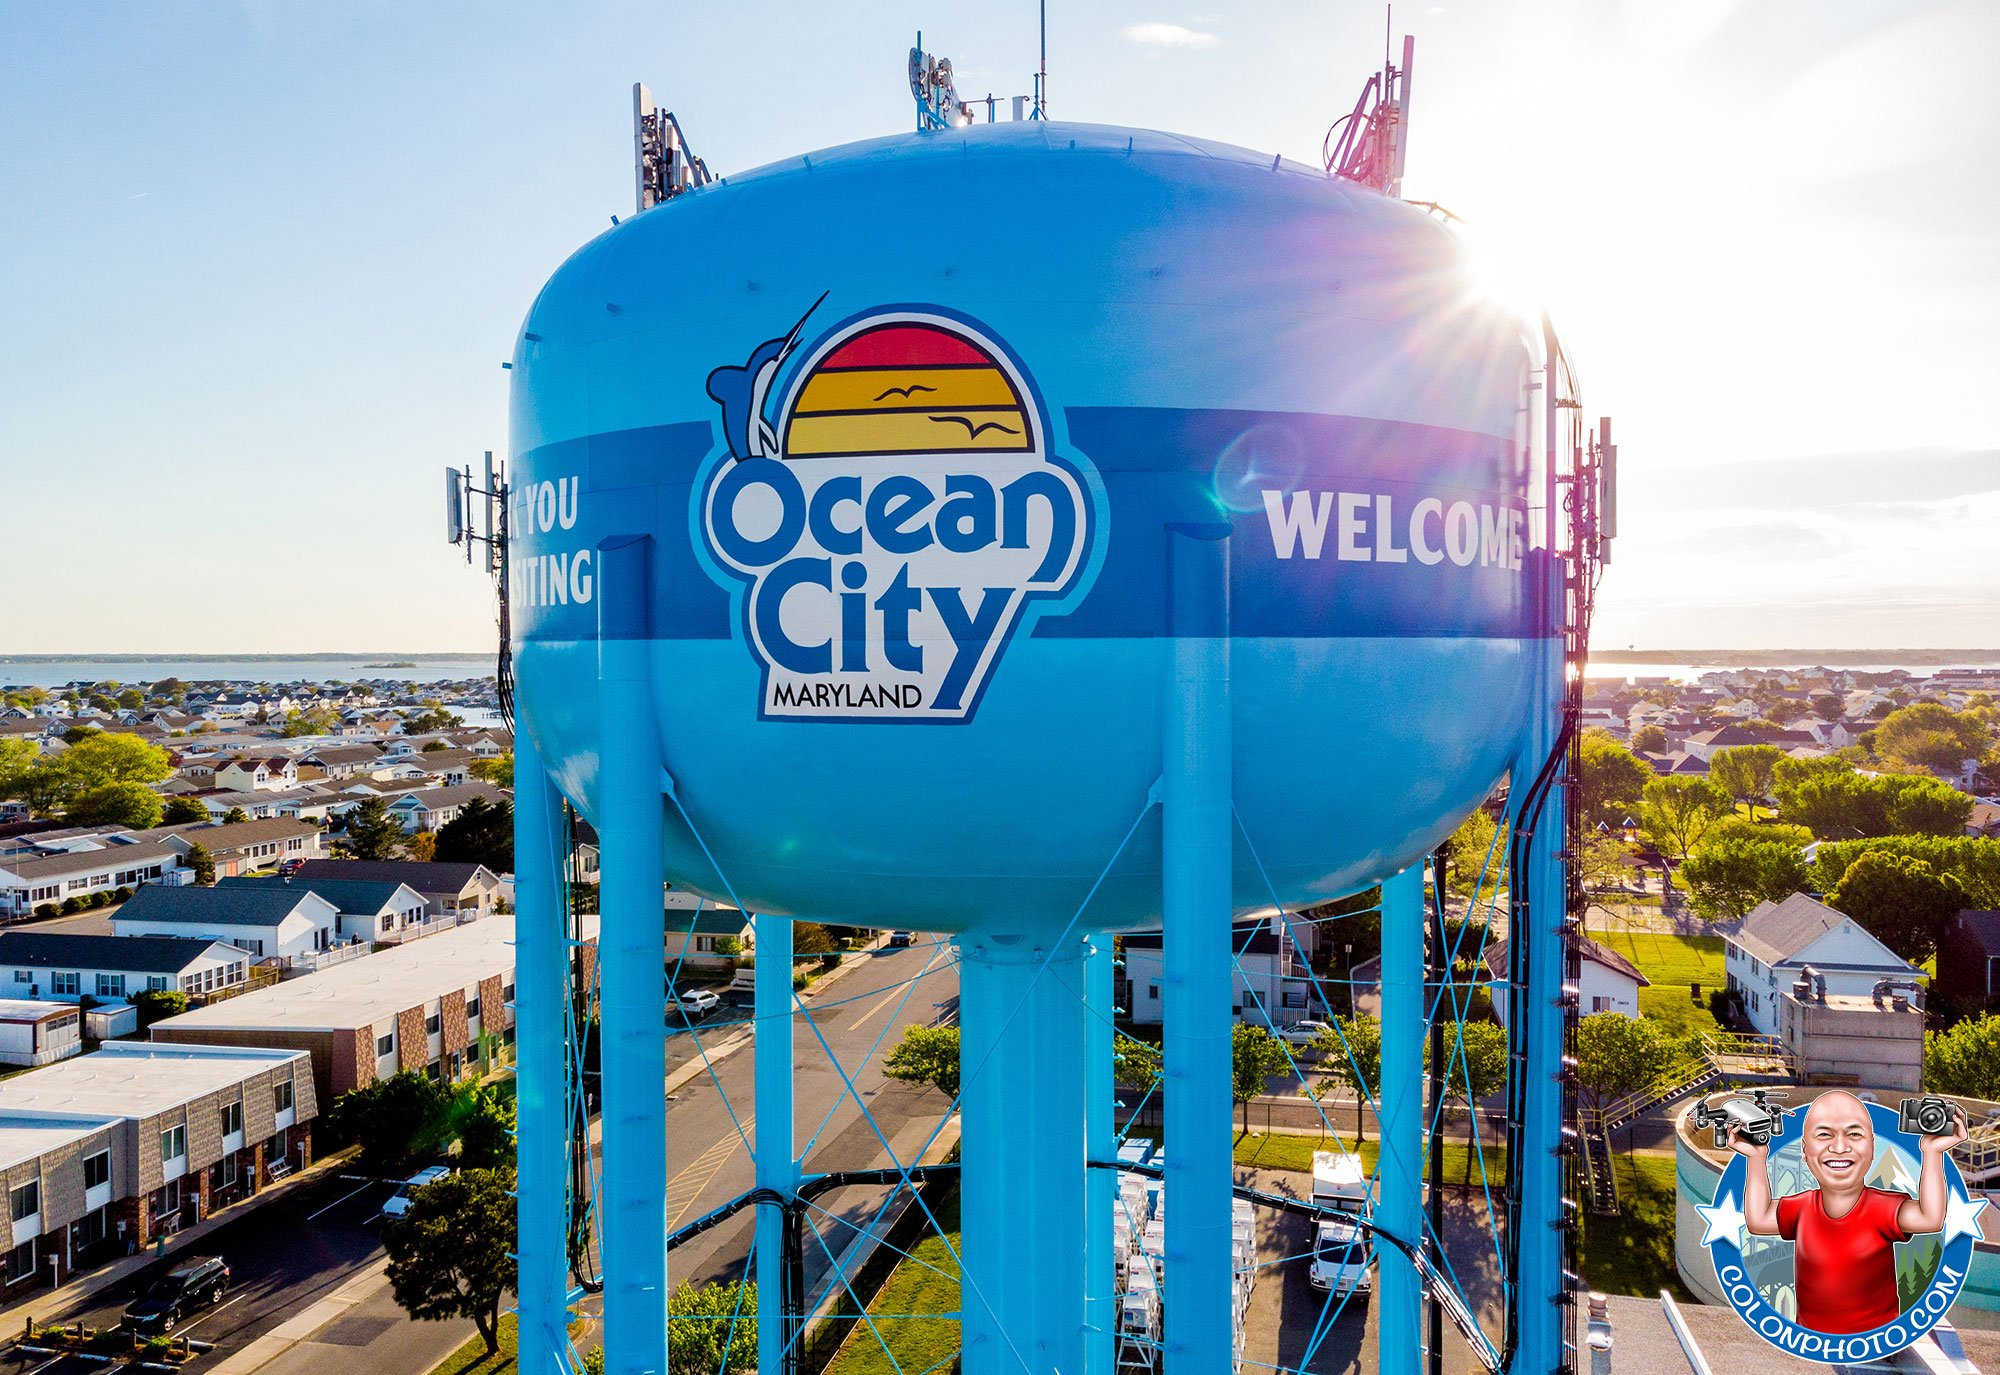 OCEAN-CITY-MARYLAND---DRONE-PHOTO-WELCOME-TO---colonphoto.com